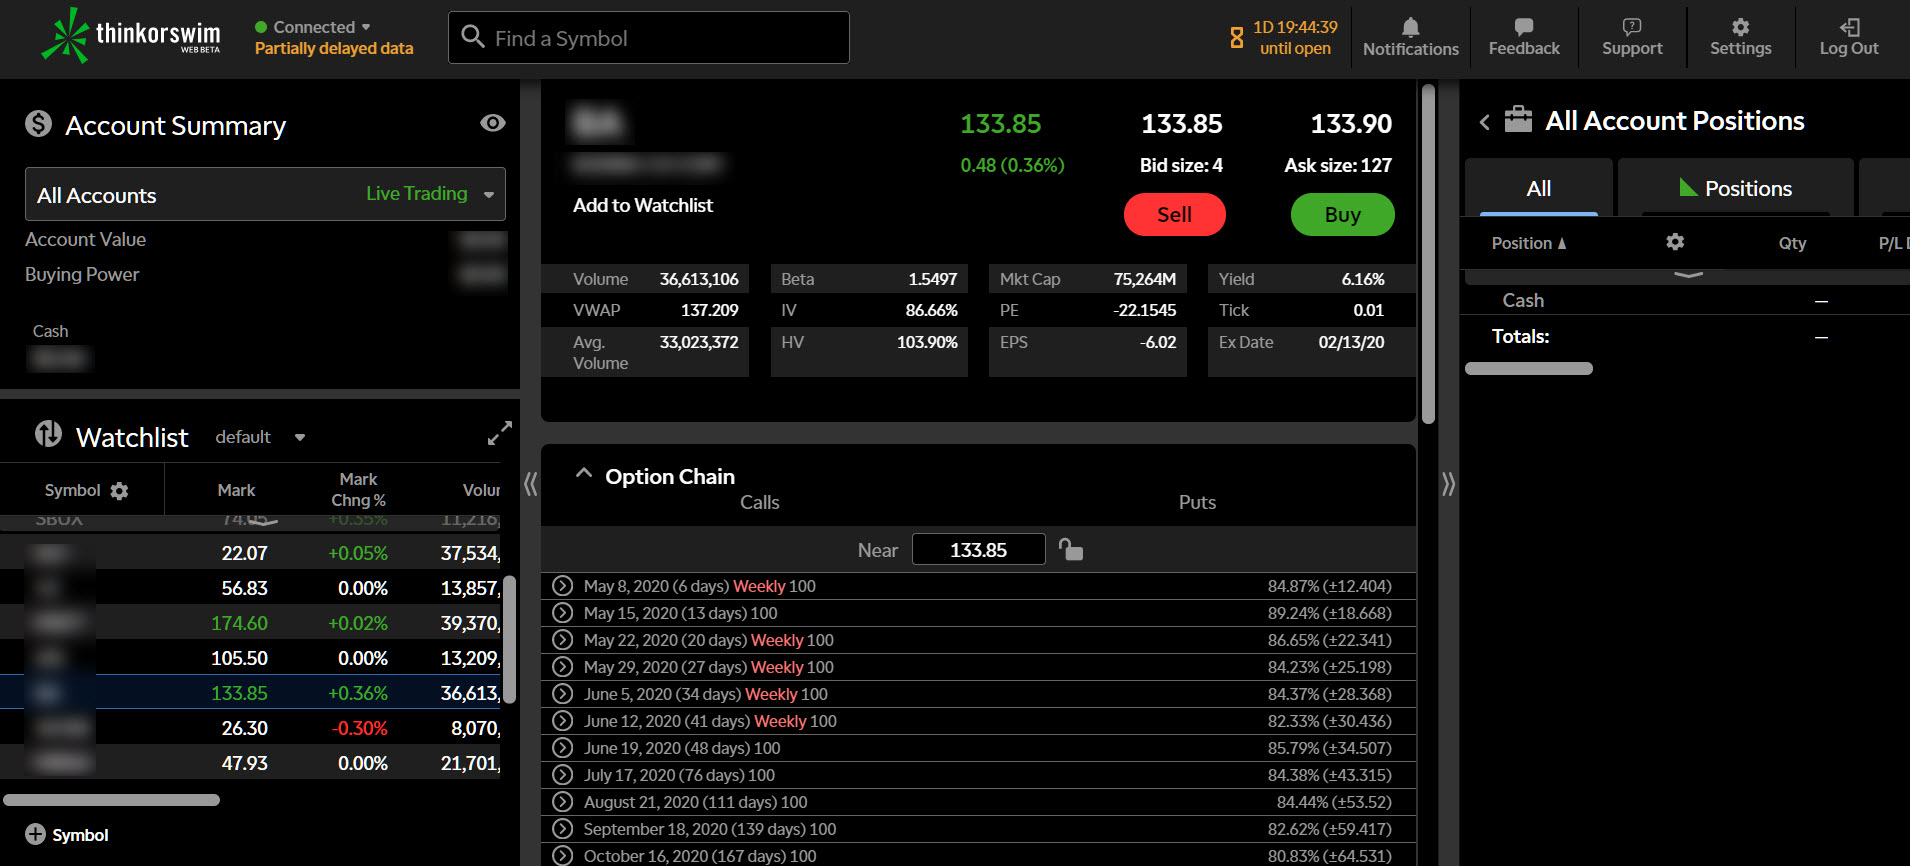 Default screen for thinkorswim Web